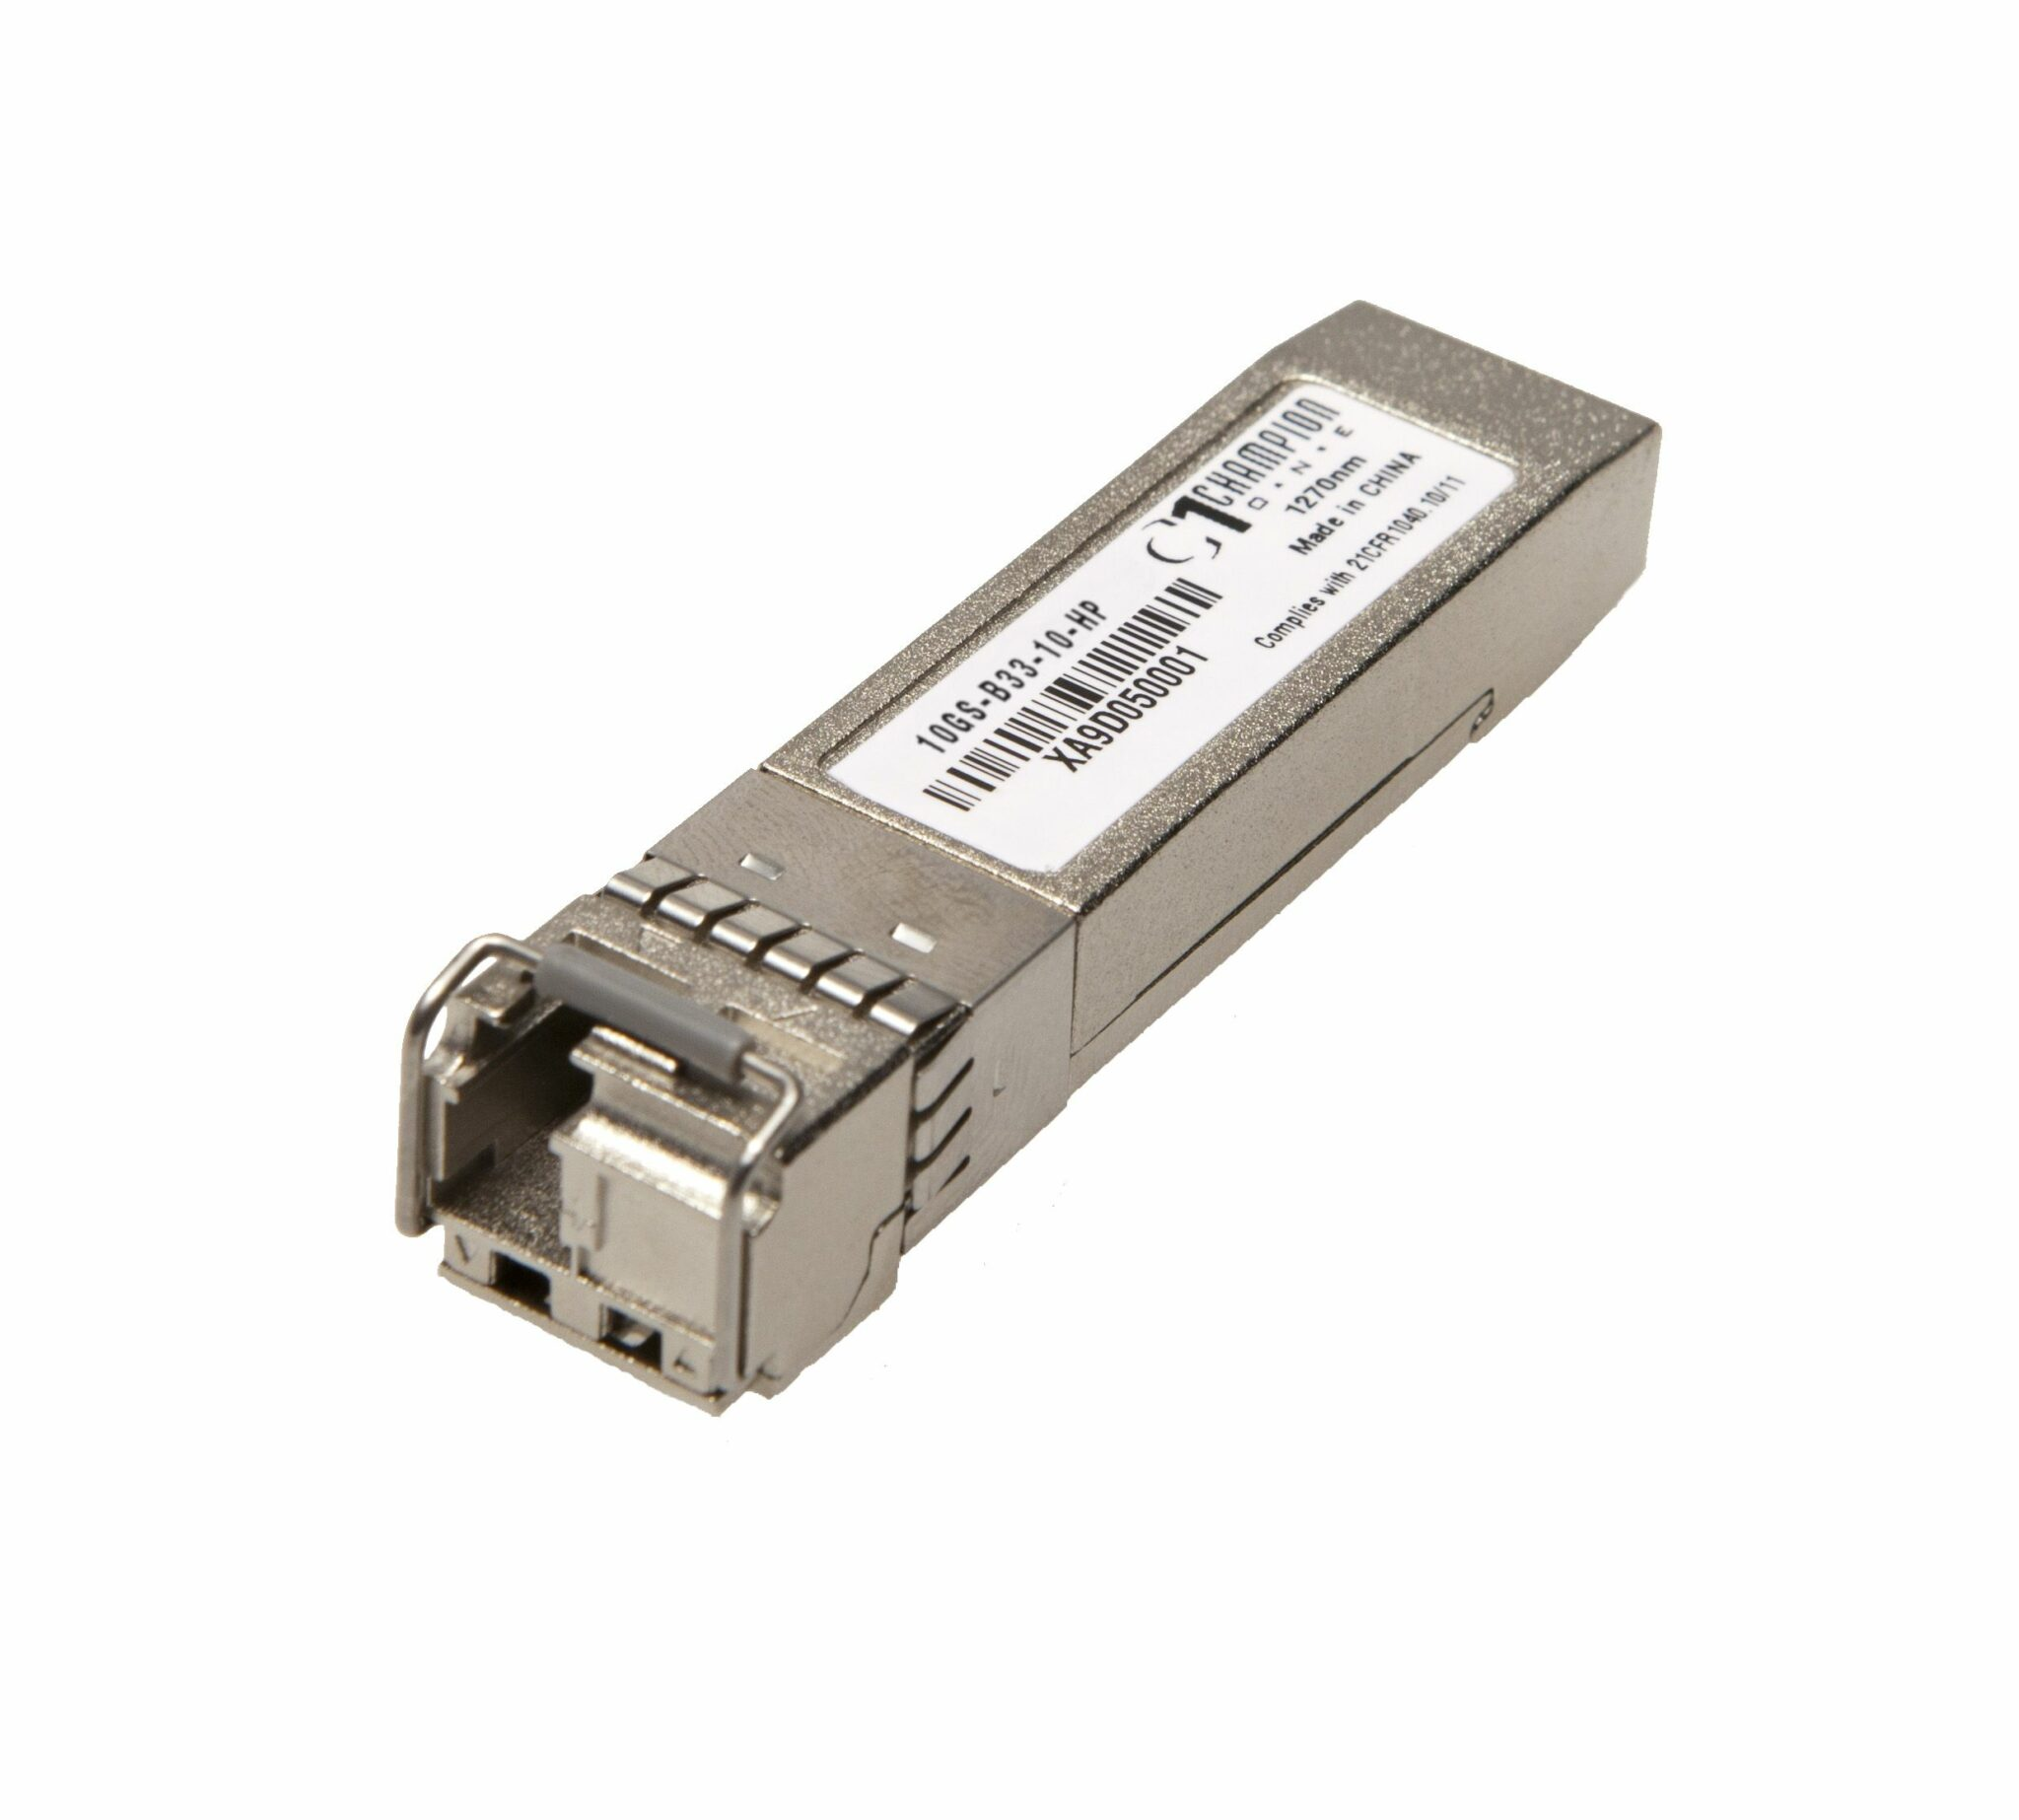 SFP+ SF 10GBase-LR 1330nm 10km Transceiver, HP Systems compatible